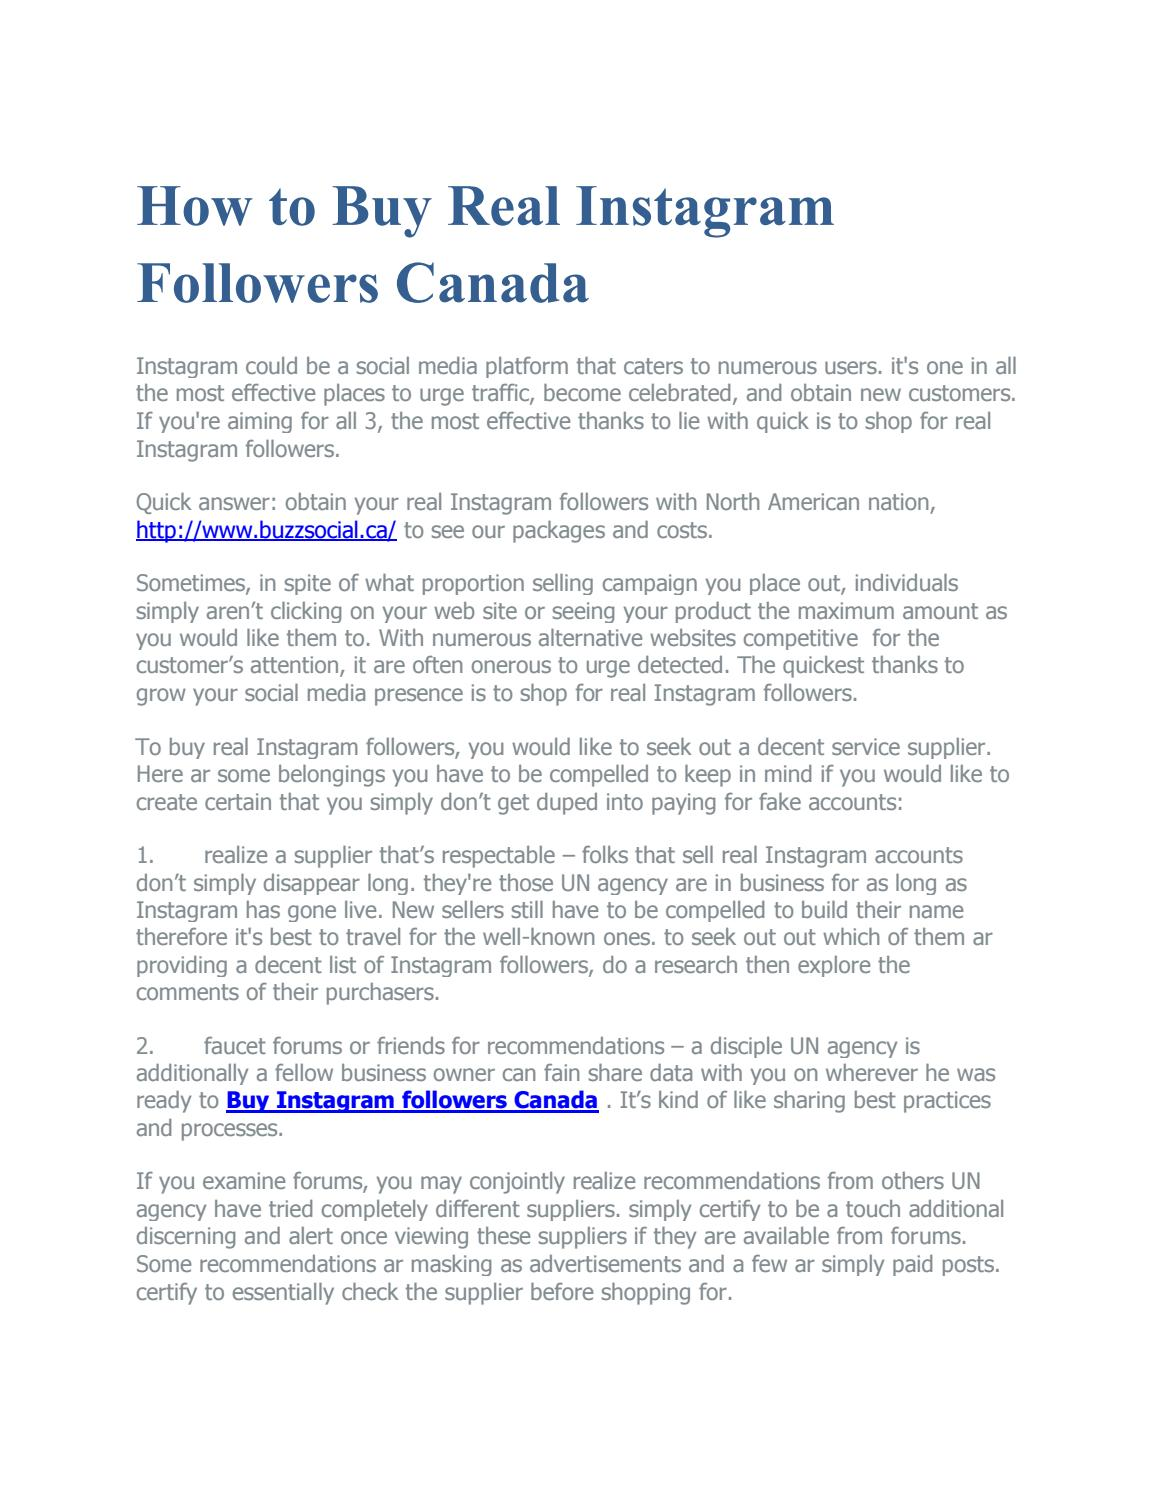 How to Buy Real Instagram Followers Canada by buy instagram